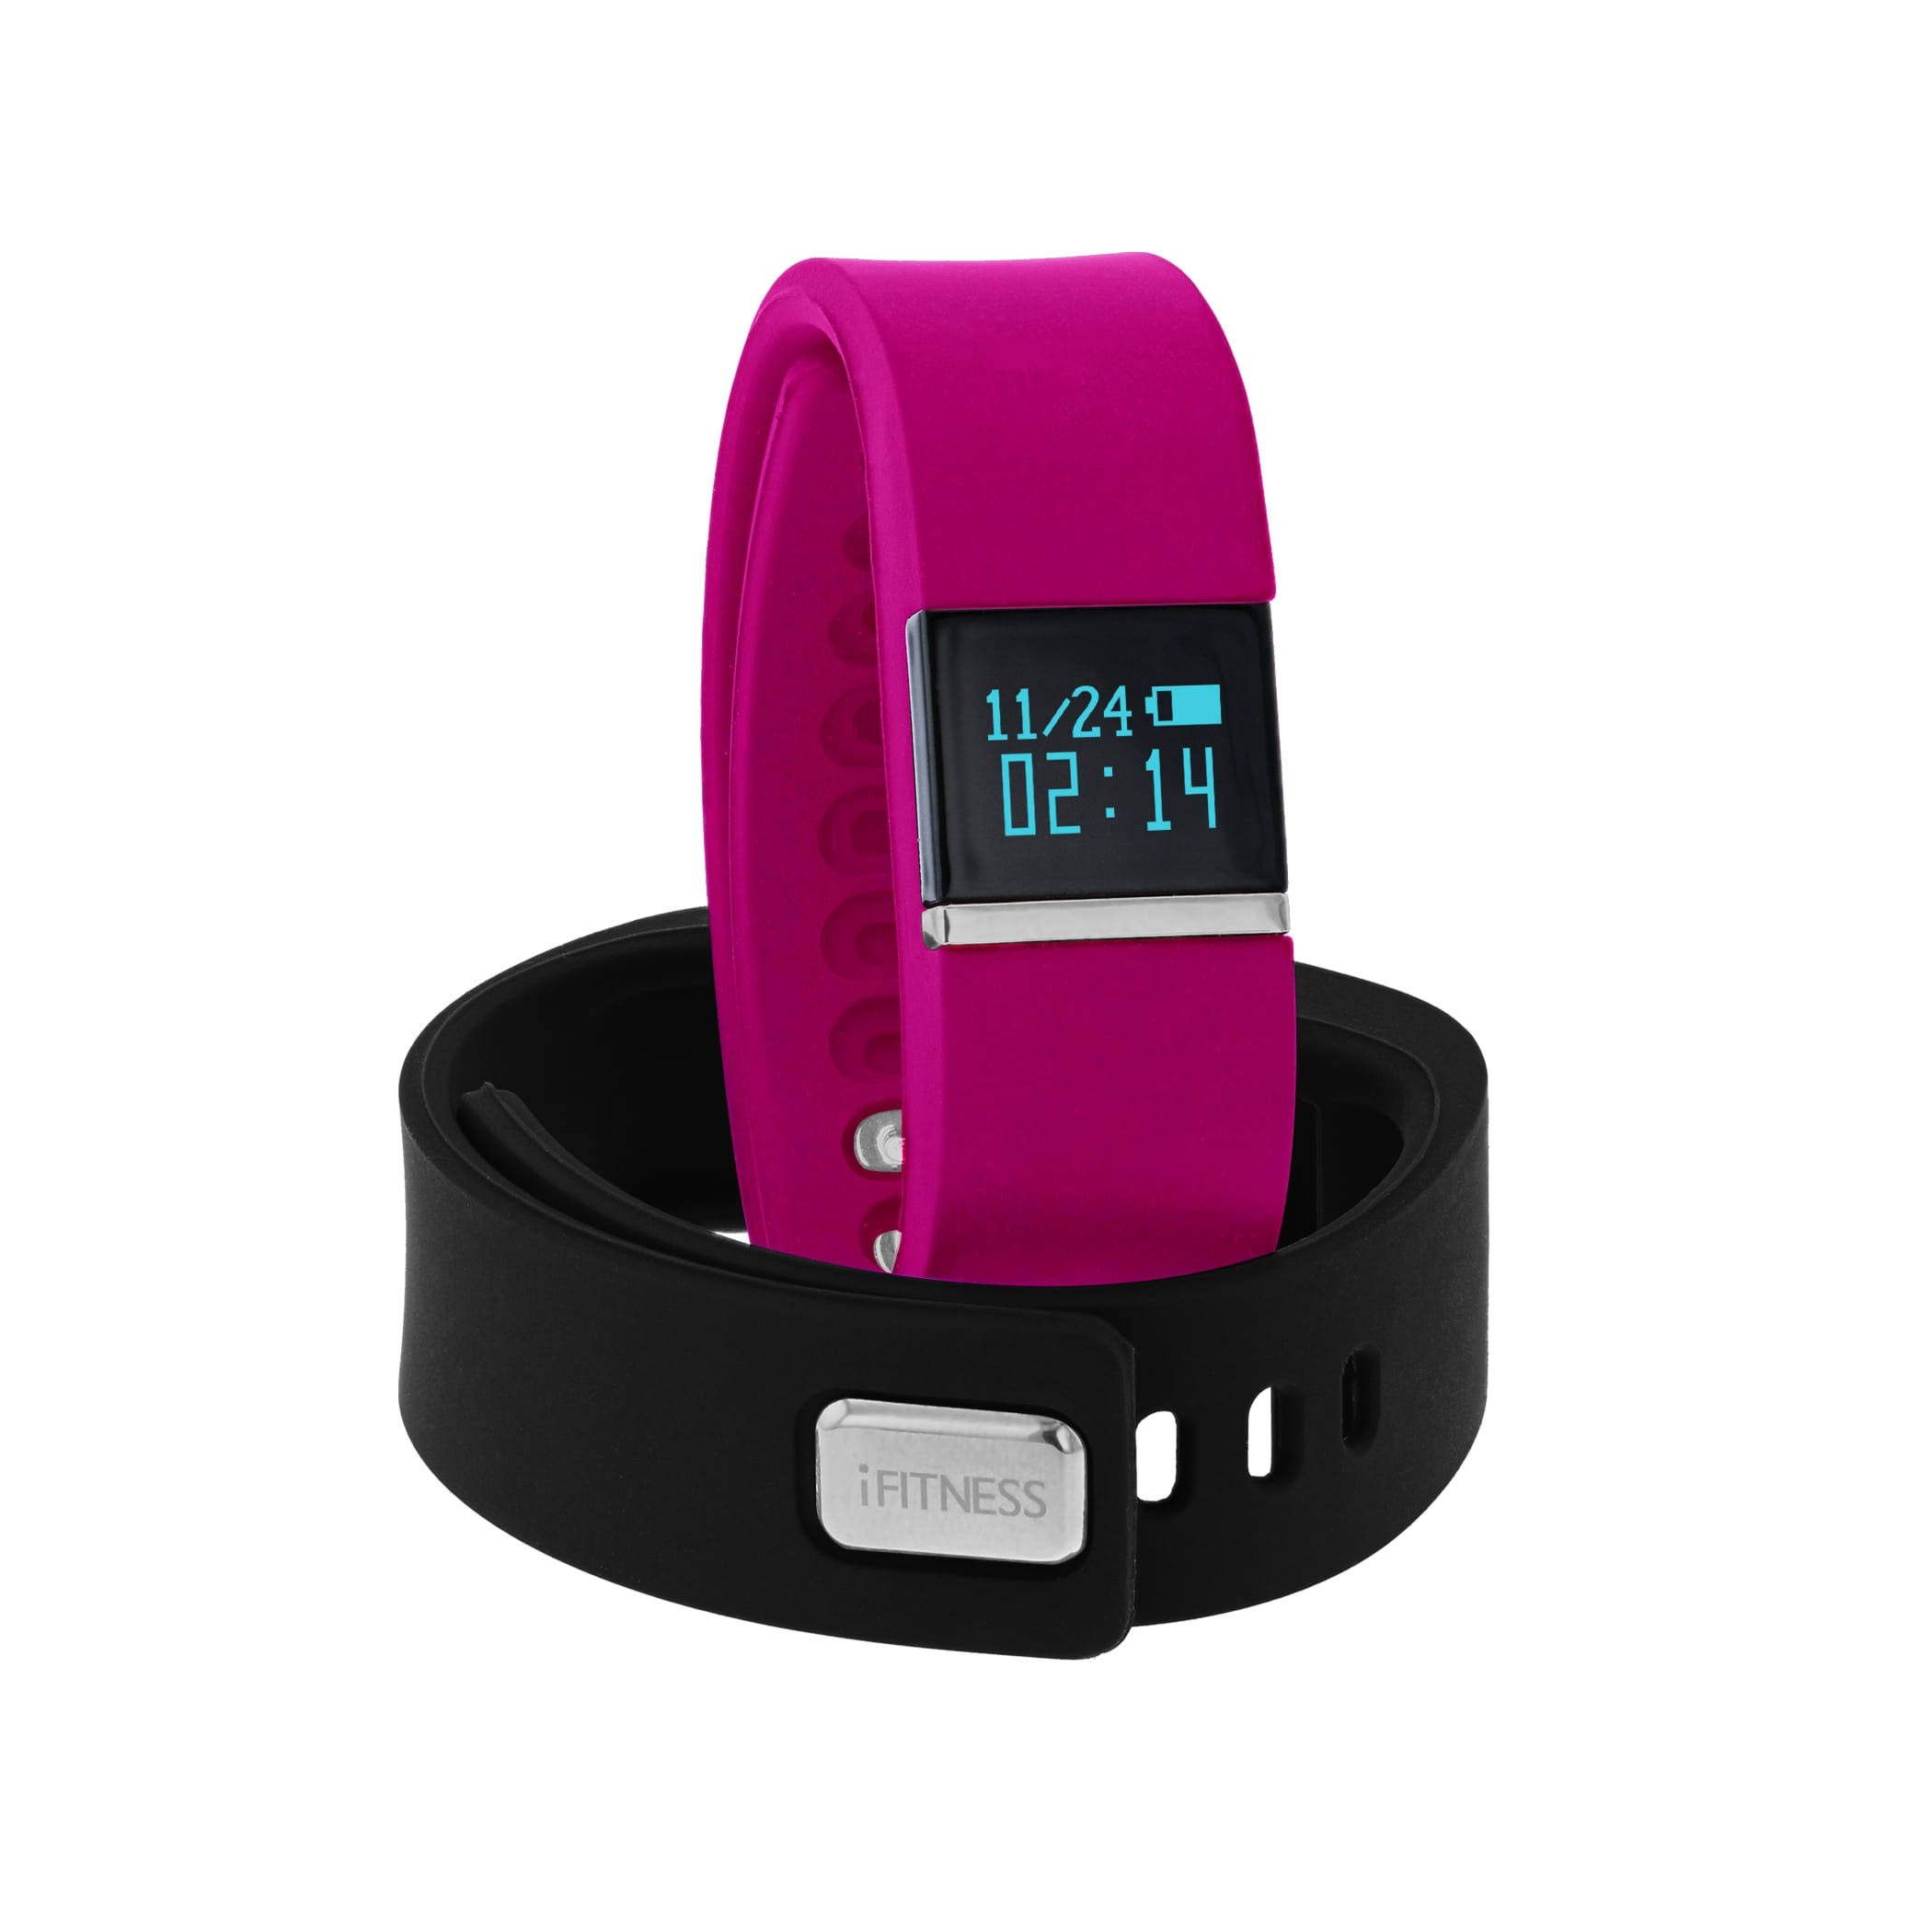 iFitness Women's Activity Tracker And Interchangeable Band Set - Black and Pink